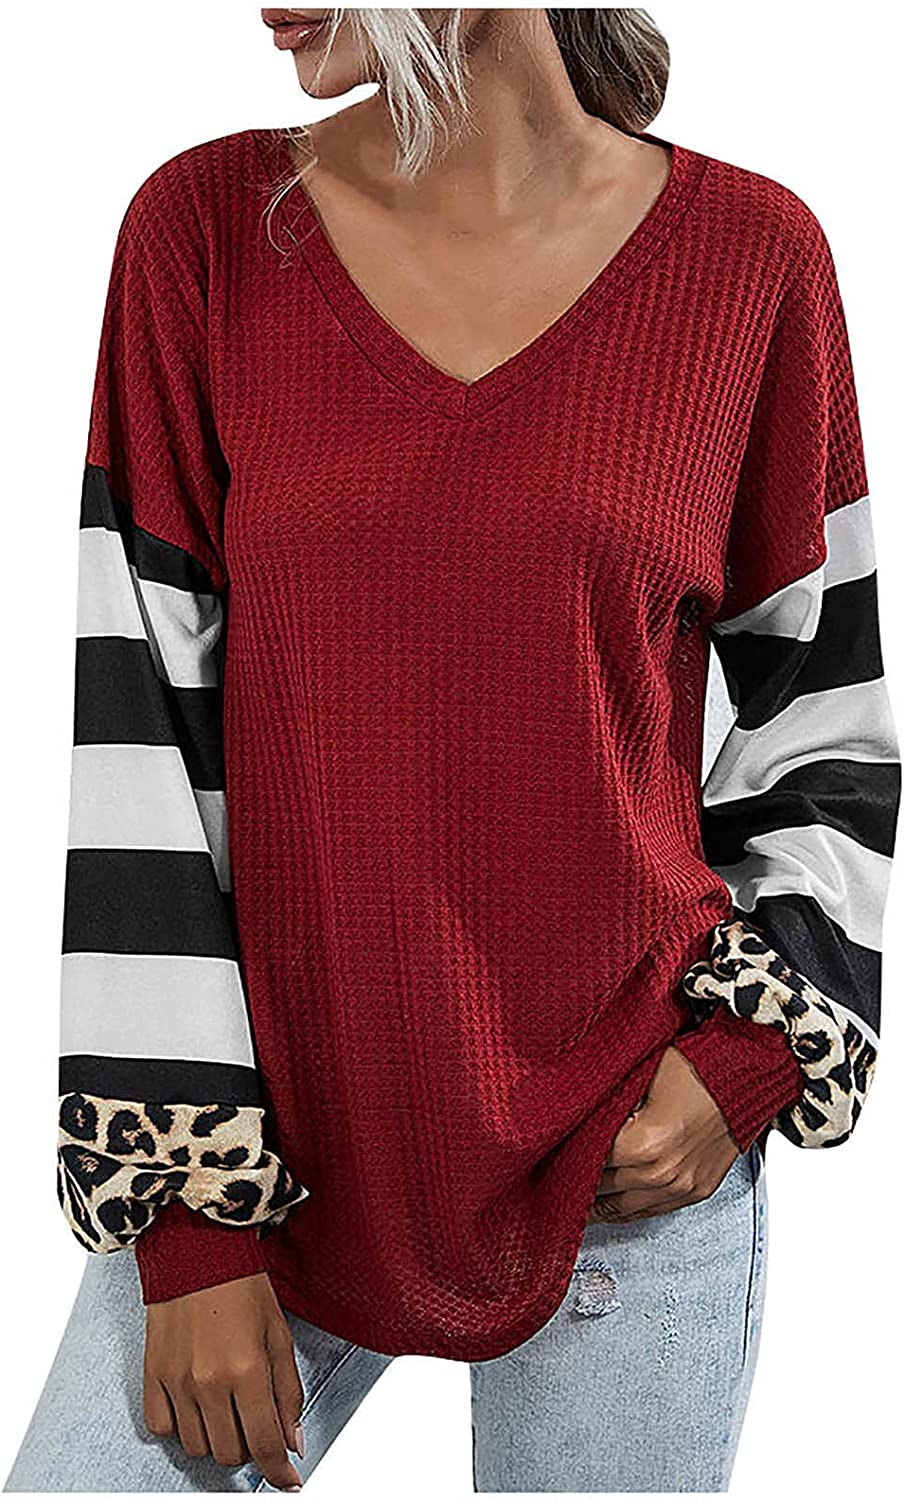 Sweaters for Women Long Sleeve Color Block Leopard Splicing Casual V Neck Tunic Tops Loose Cute Pullover Tops